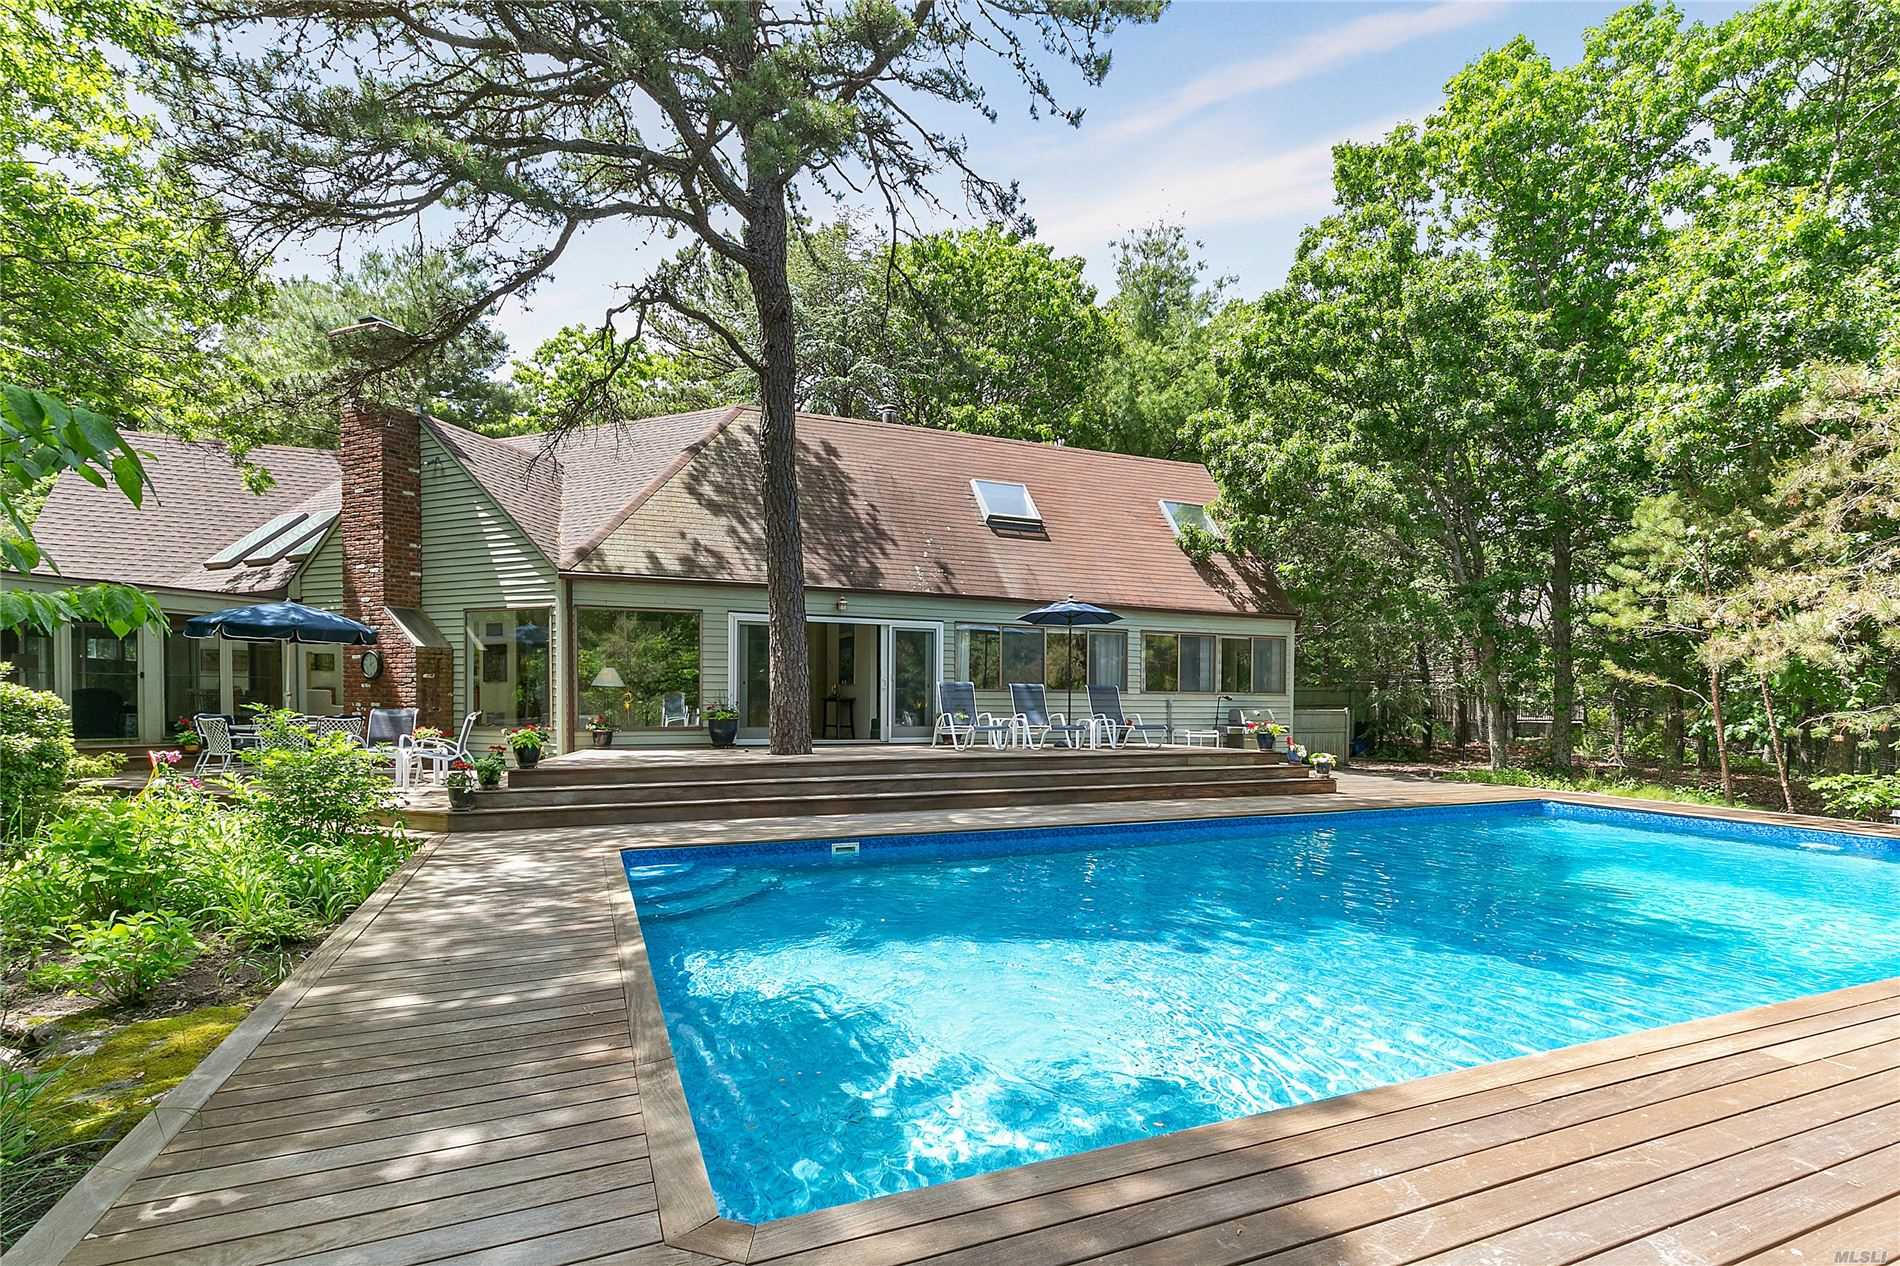 29 S Breeze Dr - East Hampton, New York